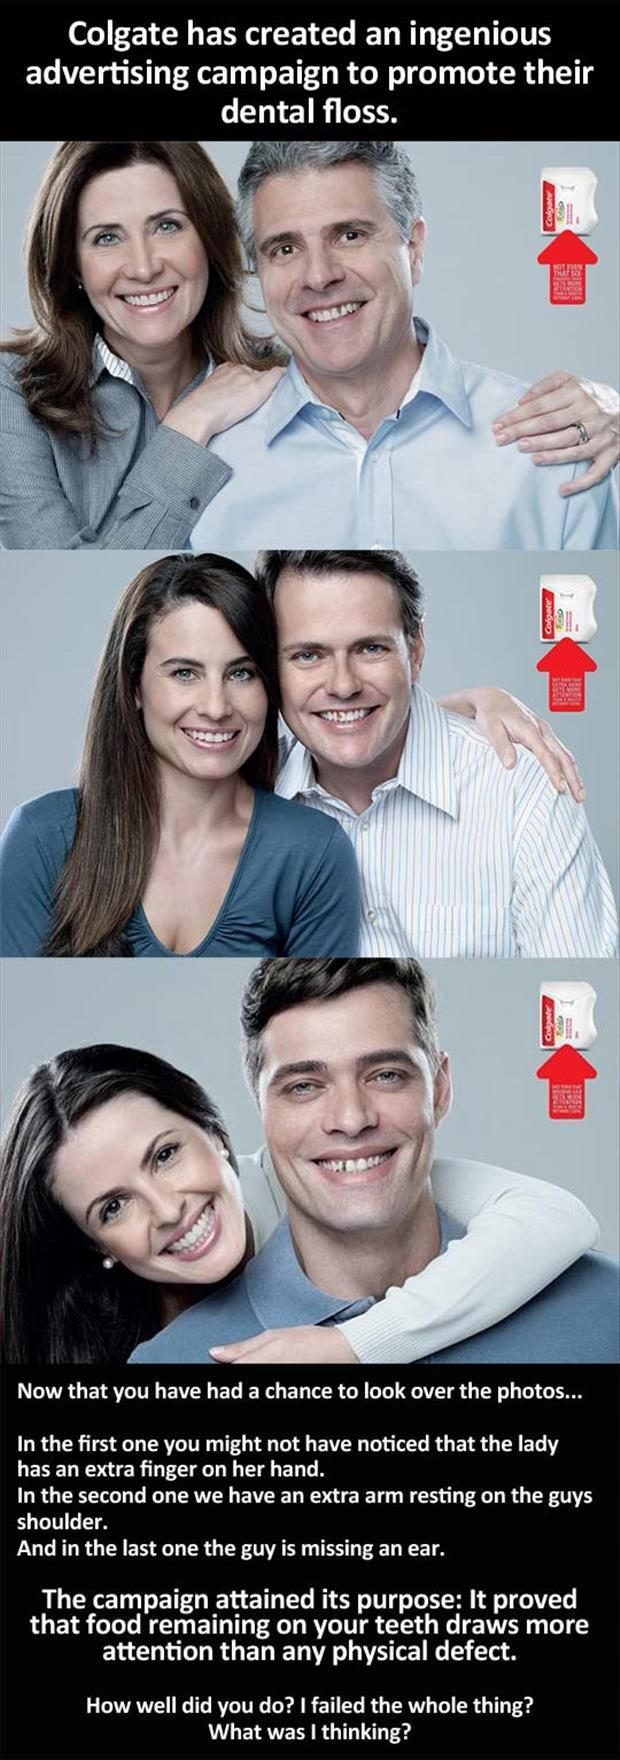 Well played Colgate